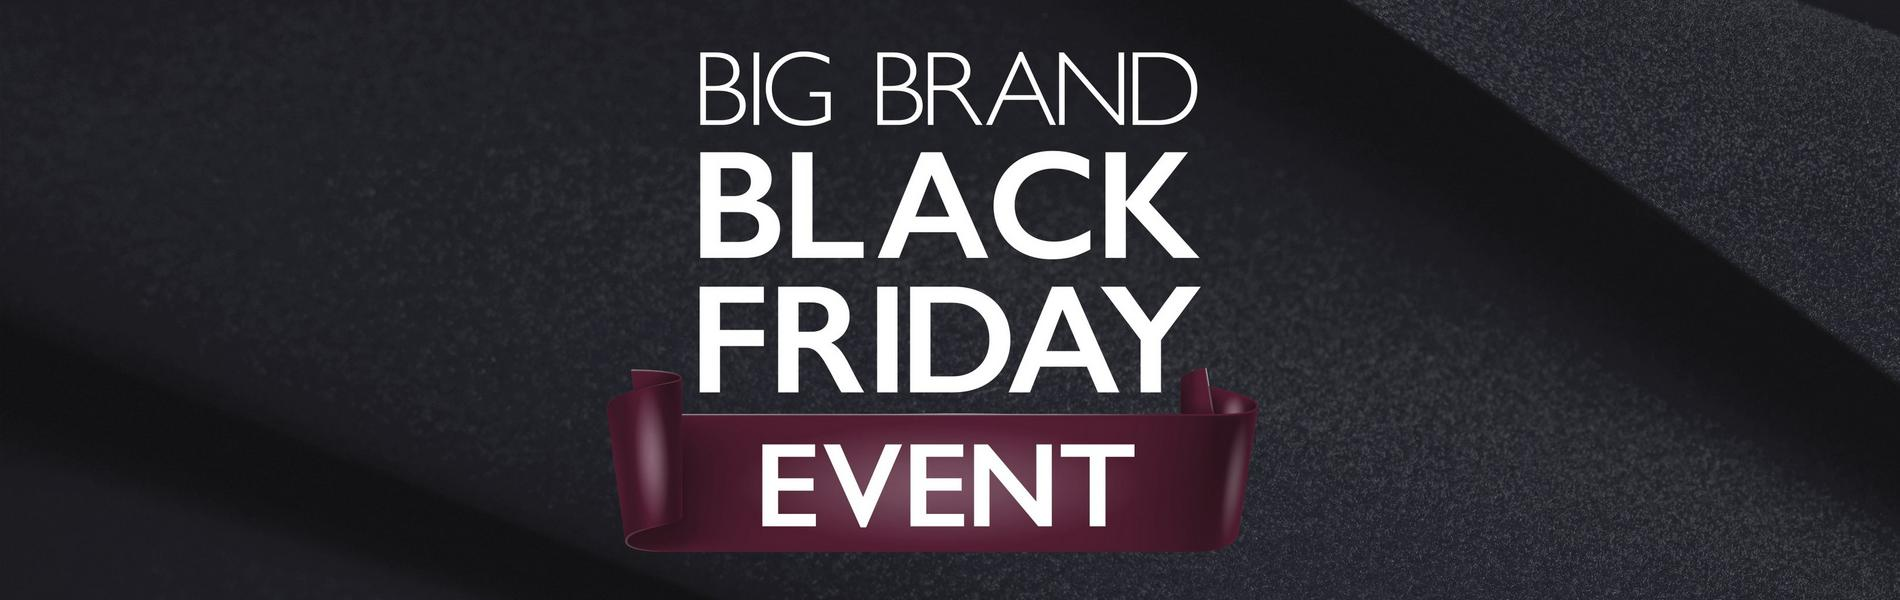 Ernest Jones Black Friday Event